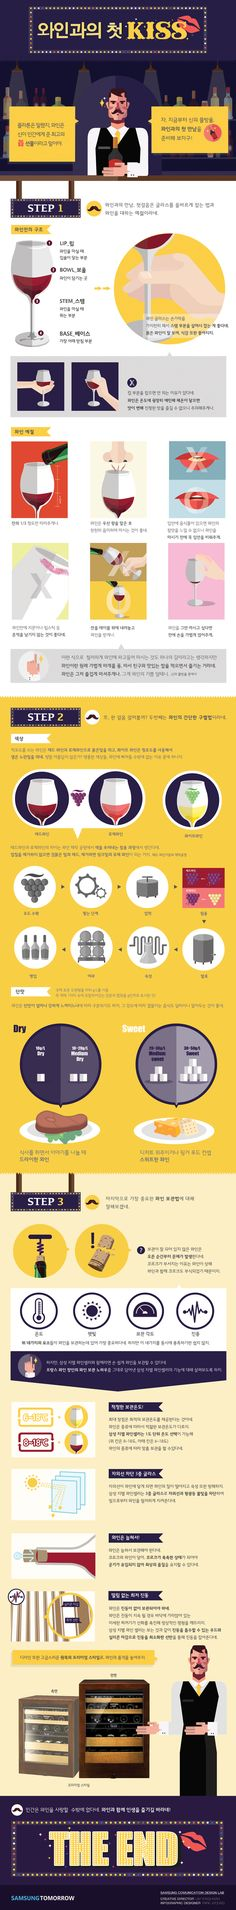 [Infographic] '와인에 대한 모든것!' 와인 초보자를 위한 인포그래픽 Sense Of Life, Timeline Infographic, Alcohol Drink Recipes, Woman Wine, Wine Design, Dessert Cups, Bakery Design, Wine And Beer, Wine Drinks